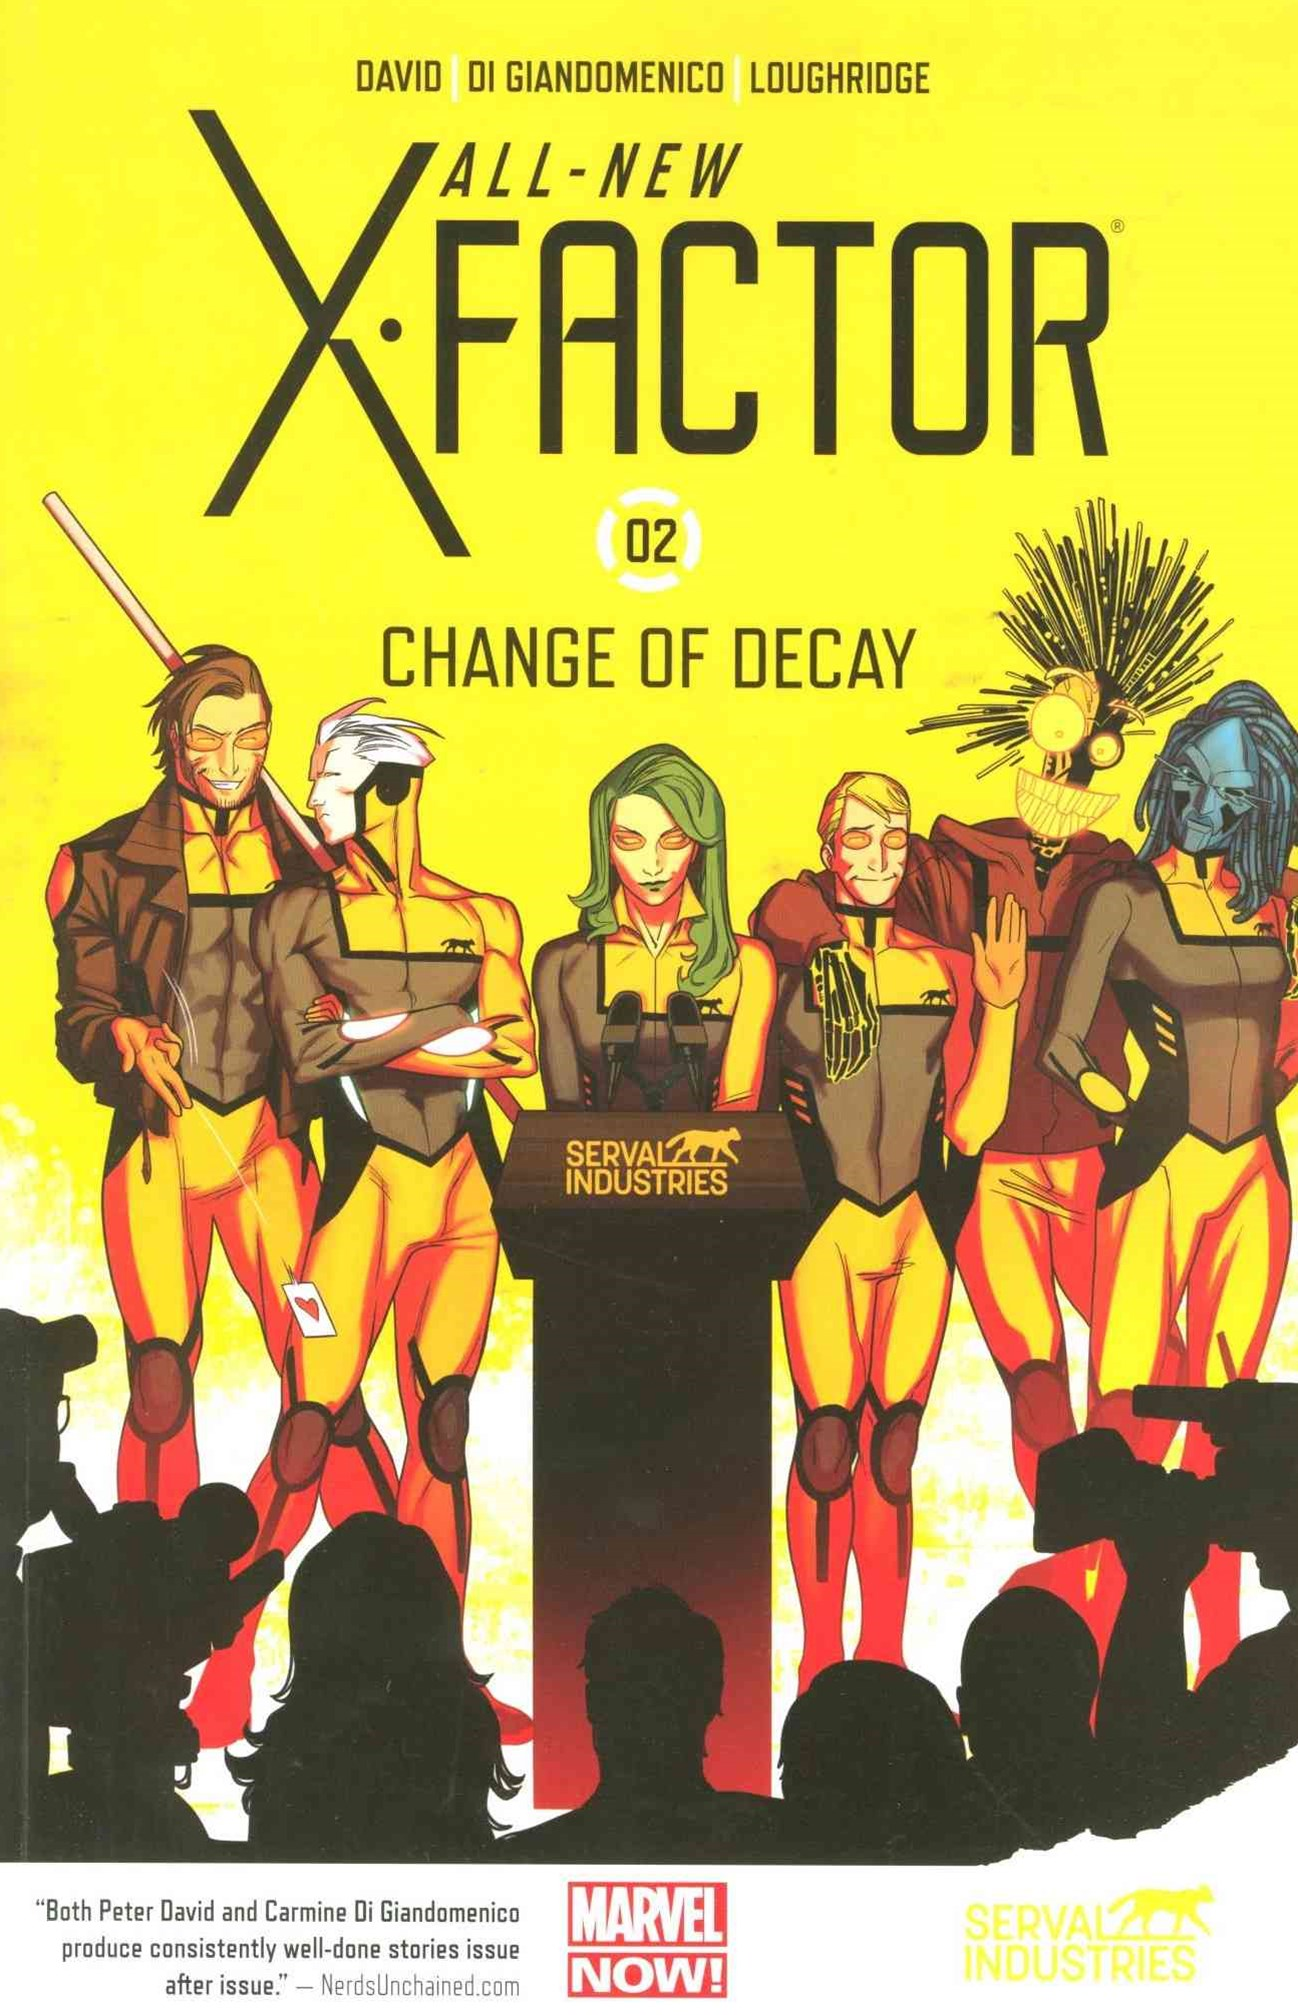 AllNew XFactor Volume 2: Change of Decay